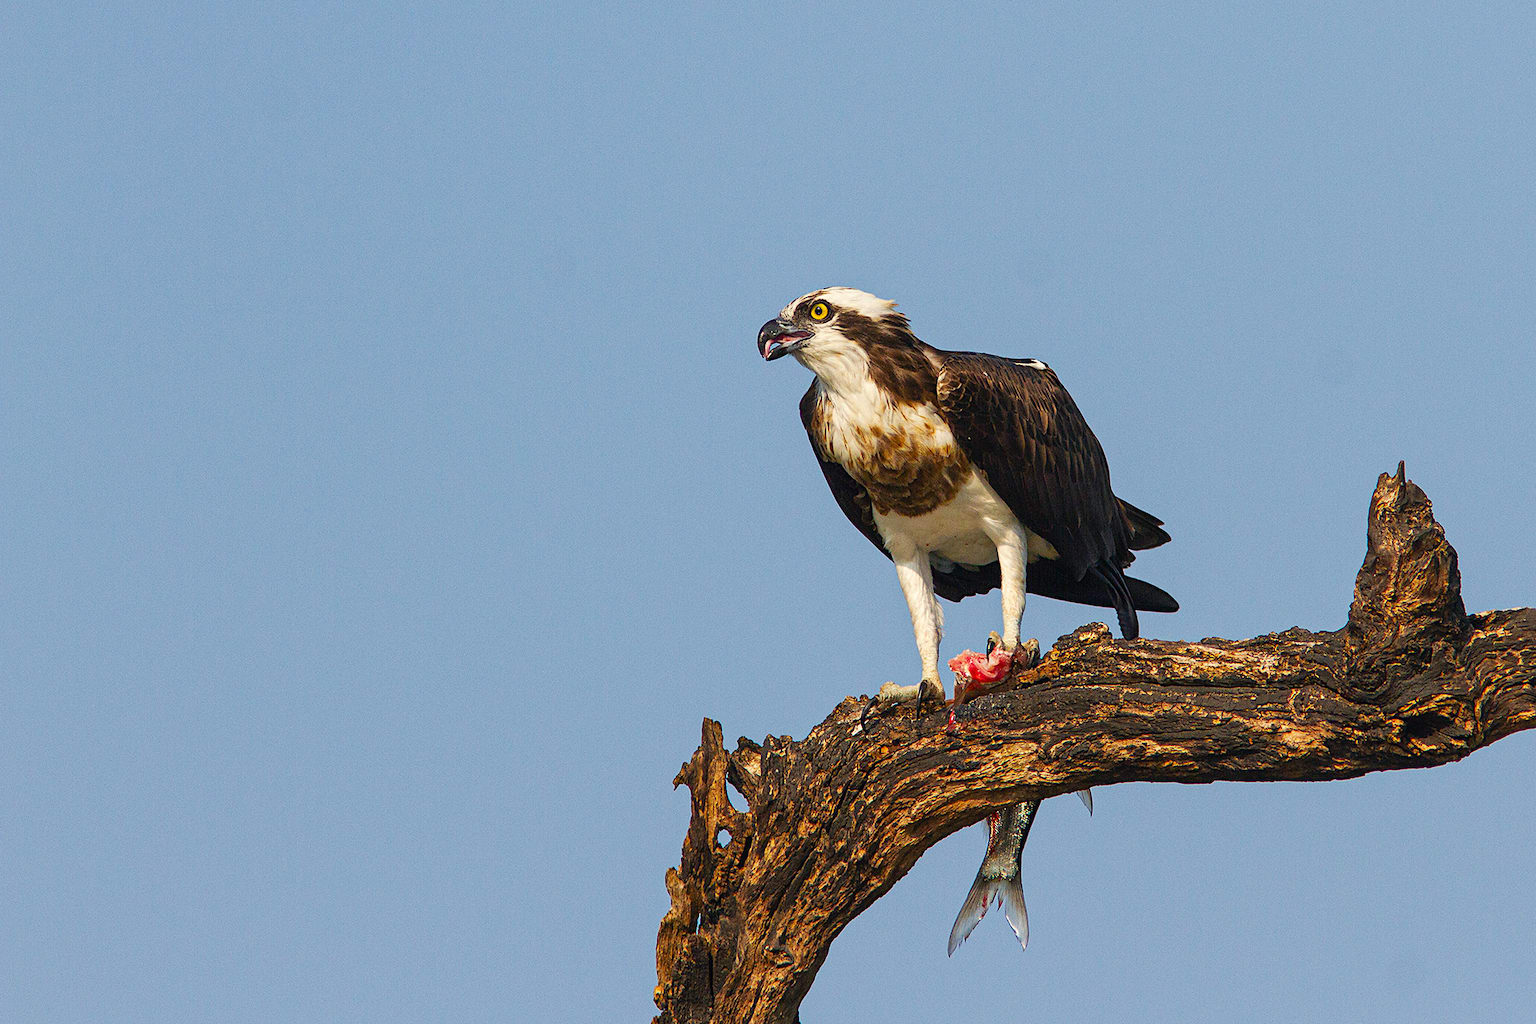 Fish make up 99 per cent of an osprey's (Pandion haliaetus) diet, making it completely dependent on waterbodies. It has several adaptations that enable a fish-eating lifestyle: reversible outer toes, prickly soles, and backward-facing scales on its talons that help hold fish in place. When it hunts, it dives head-first into the water with wings closed and can close its nostrils to keep water out. Dense, oily plumage helps waterproof its feathers to some extent.  Ospreys are found all over the globe and are the second-most widely distributed raptor species after the peregrine falcon. On the Indian subcontinent they are mainly winter visitors. Across India, they are found around large waterbodies including rivers. Some records indicate a few birds spending the summer at inland waterbodies in Karnataka.